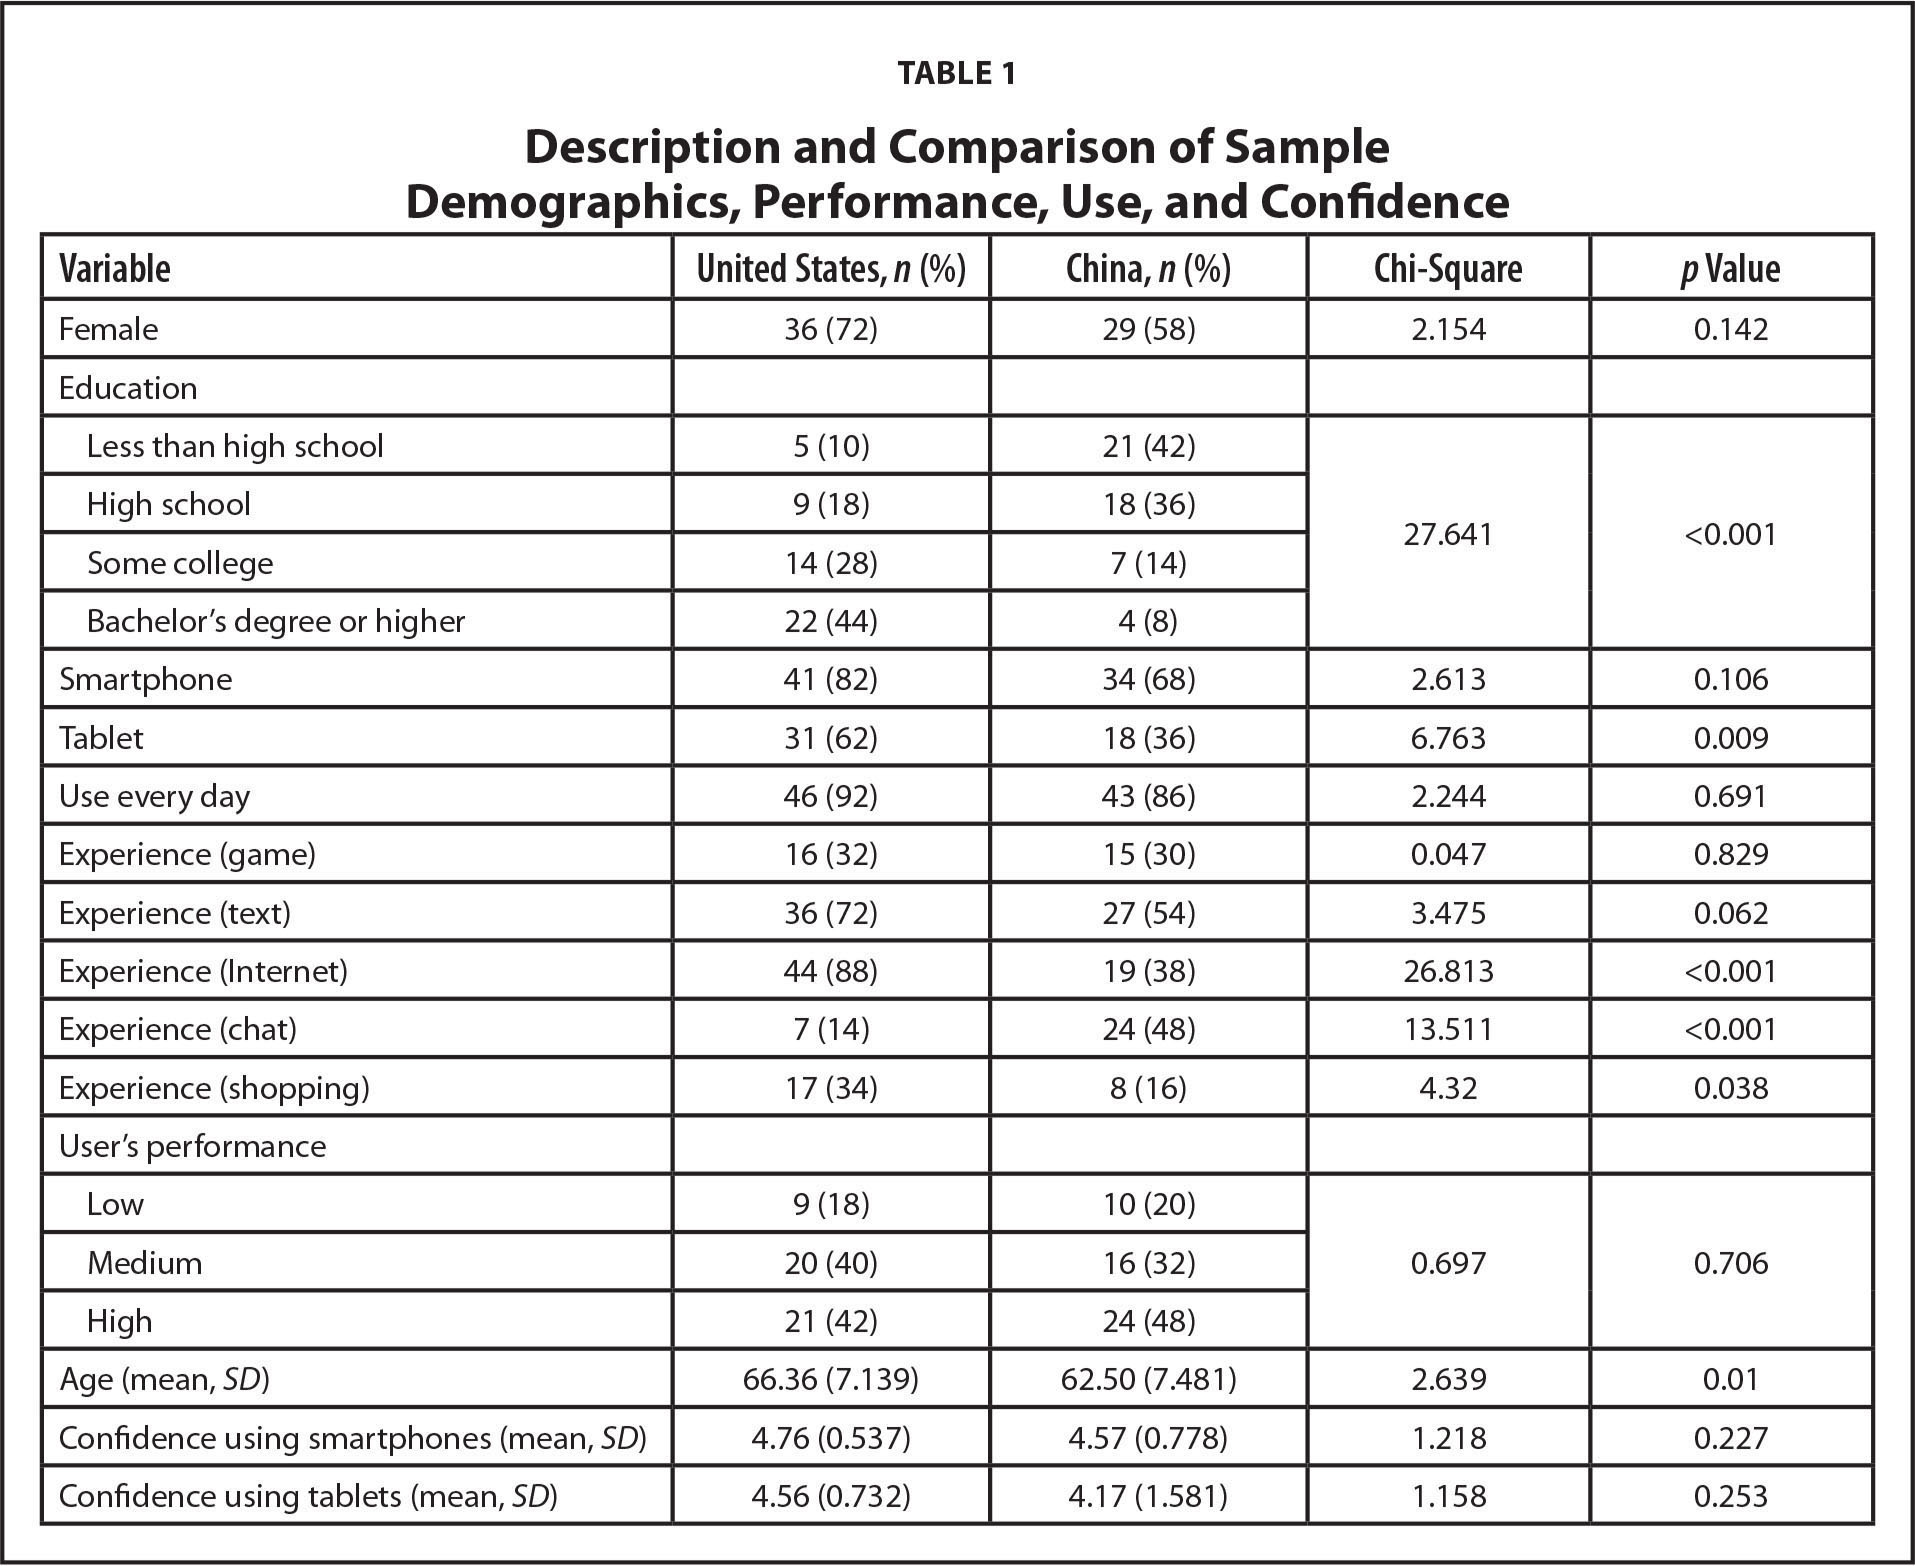 Description and Comparison of Sample Demographics, Performance, Use, and Confidence